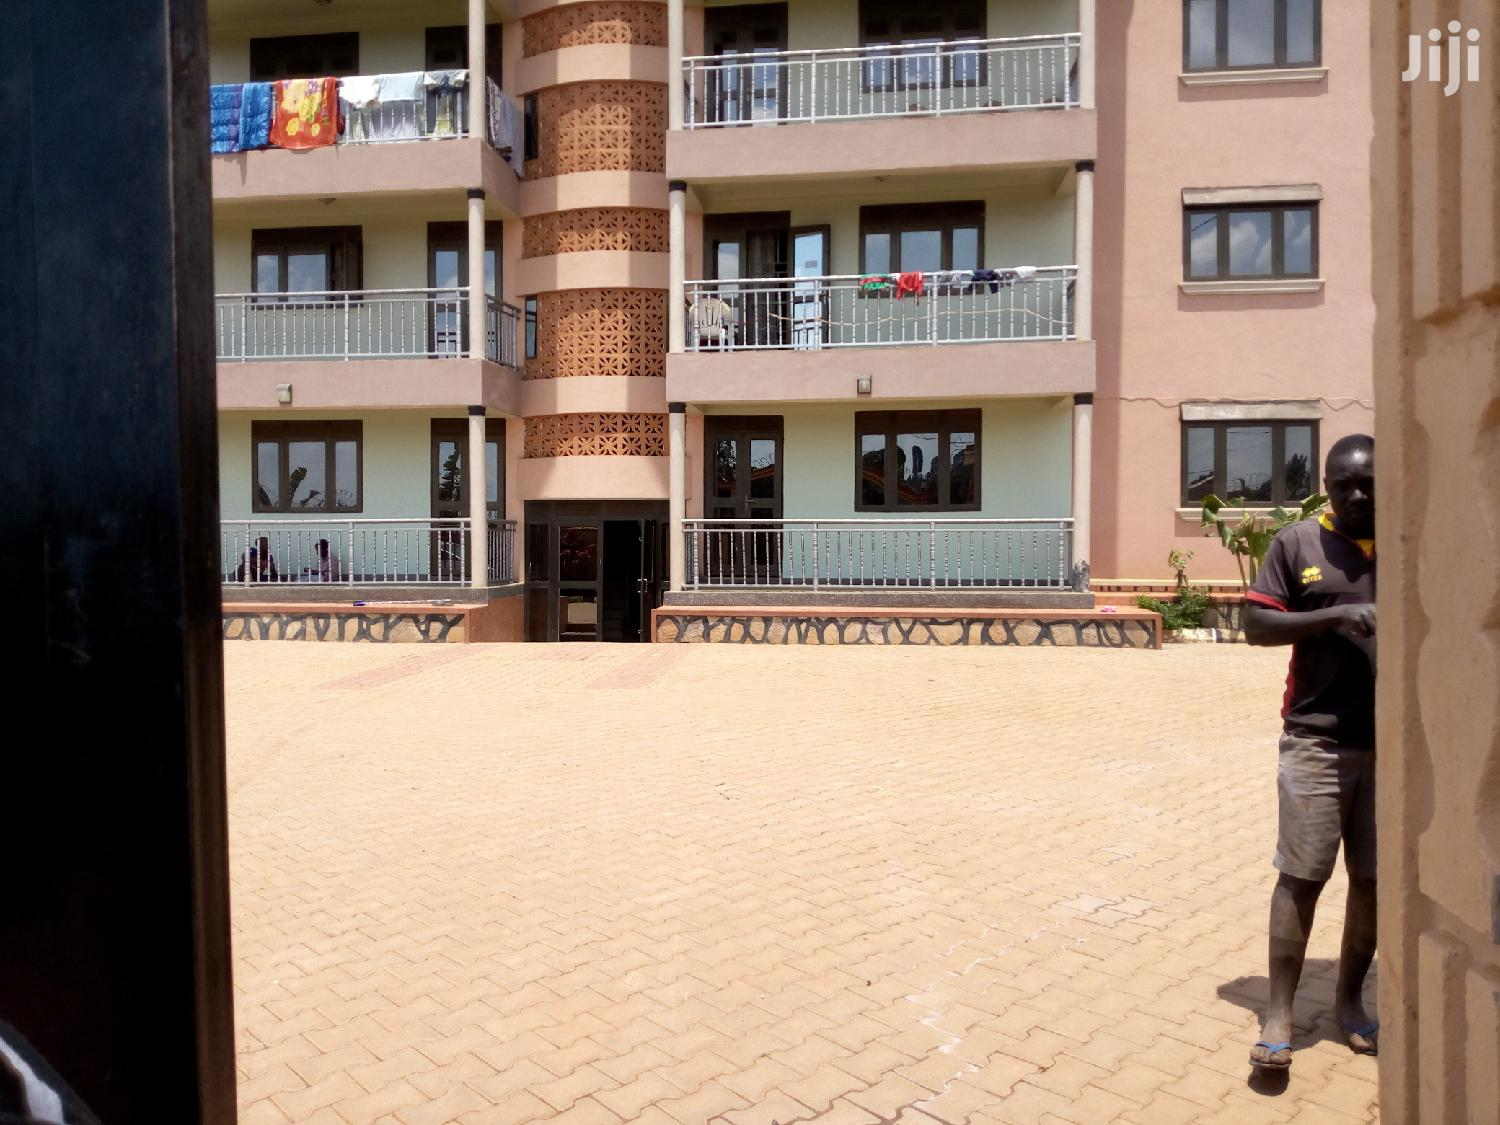 Three Bedroom Apartment For Rent In Namugongo | Houses & Apartments For Rent for sale in Kampala, Central Region, Uganda